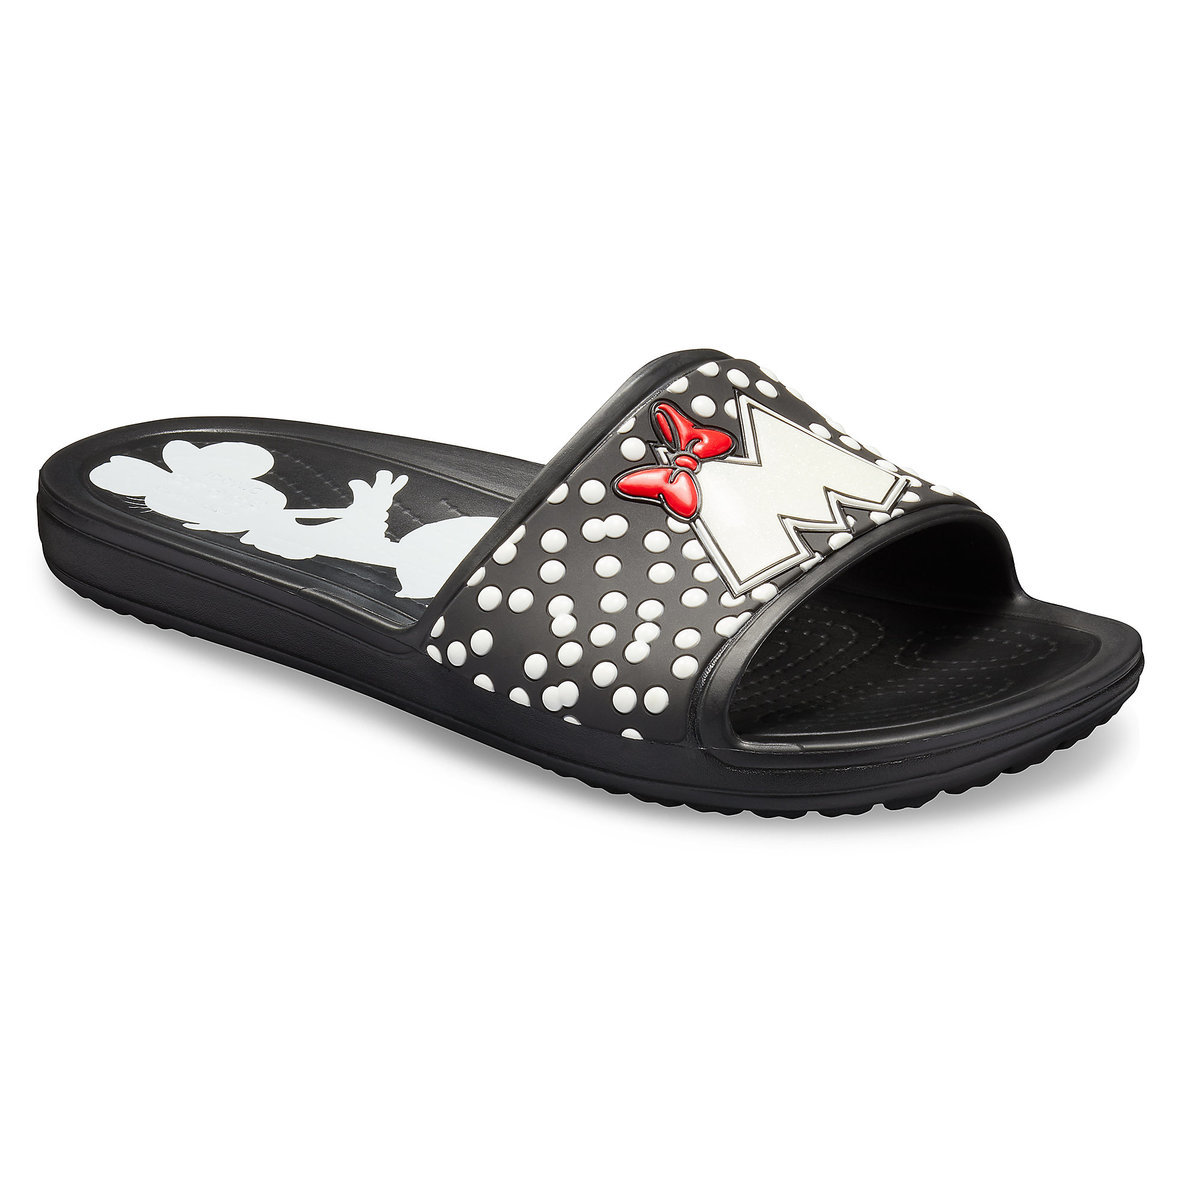 aef81d9f3 Product Image of Minnie Mouse Sloane Slides for Women by Crocs   1